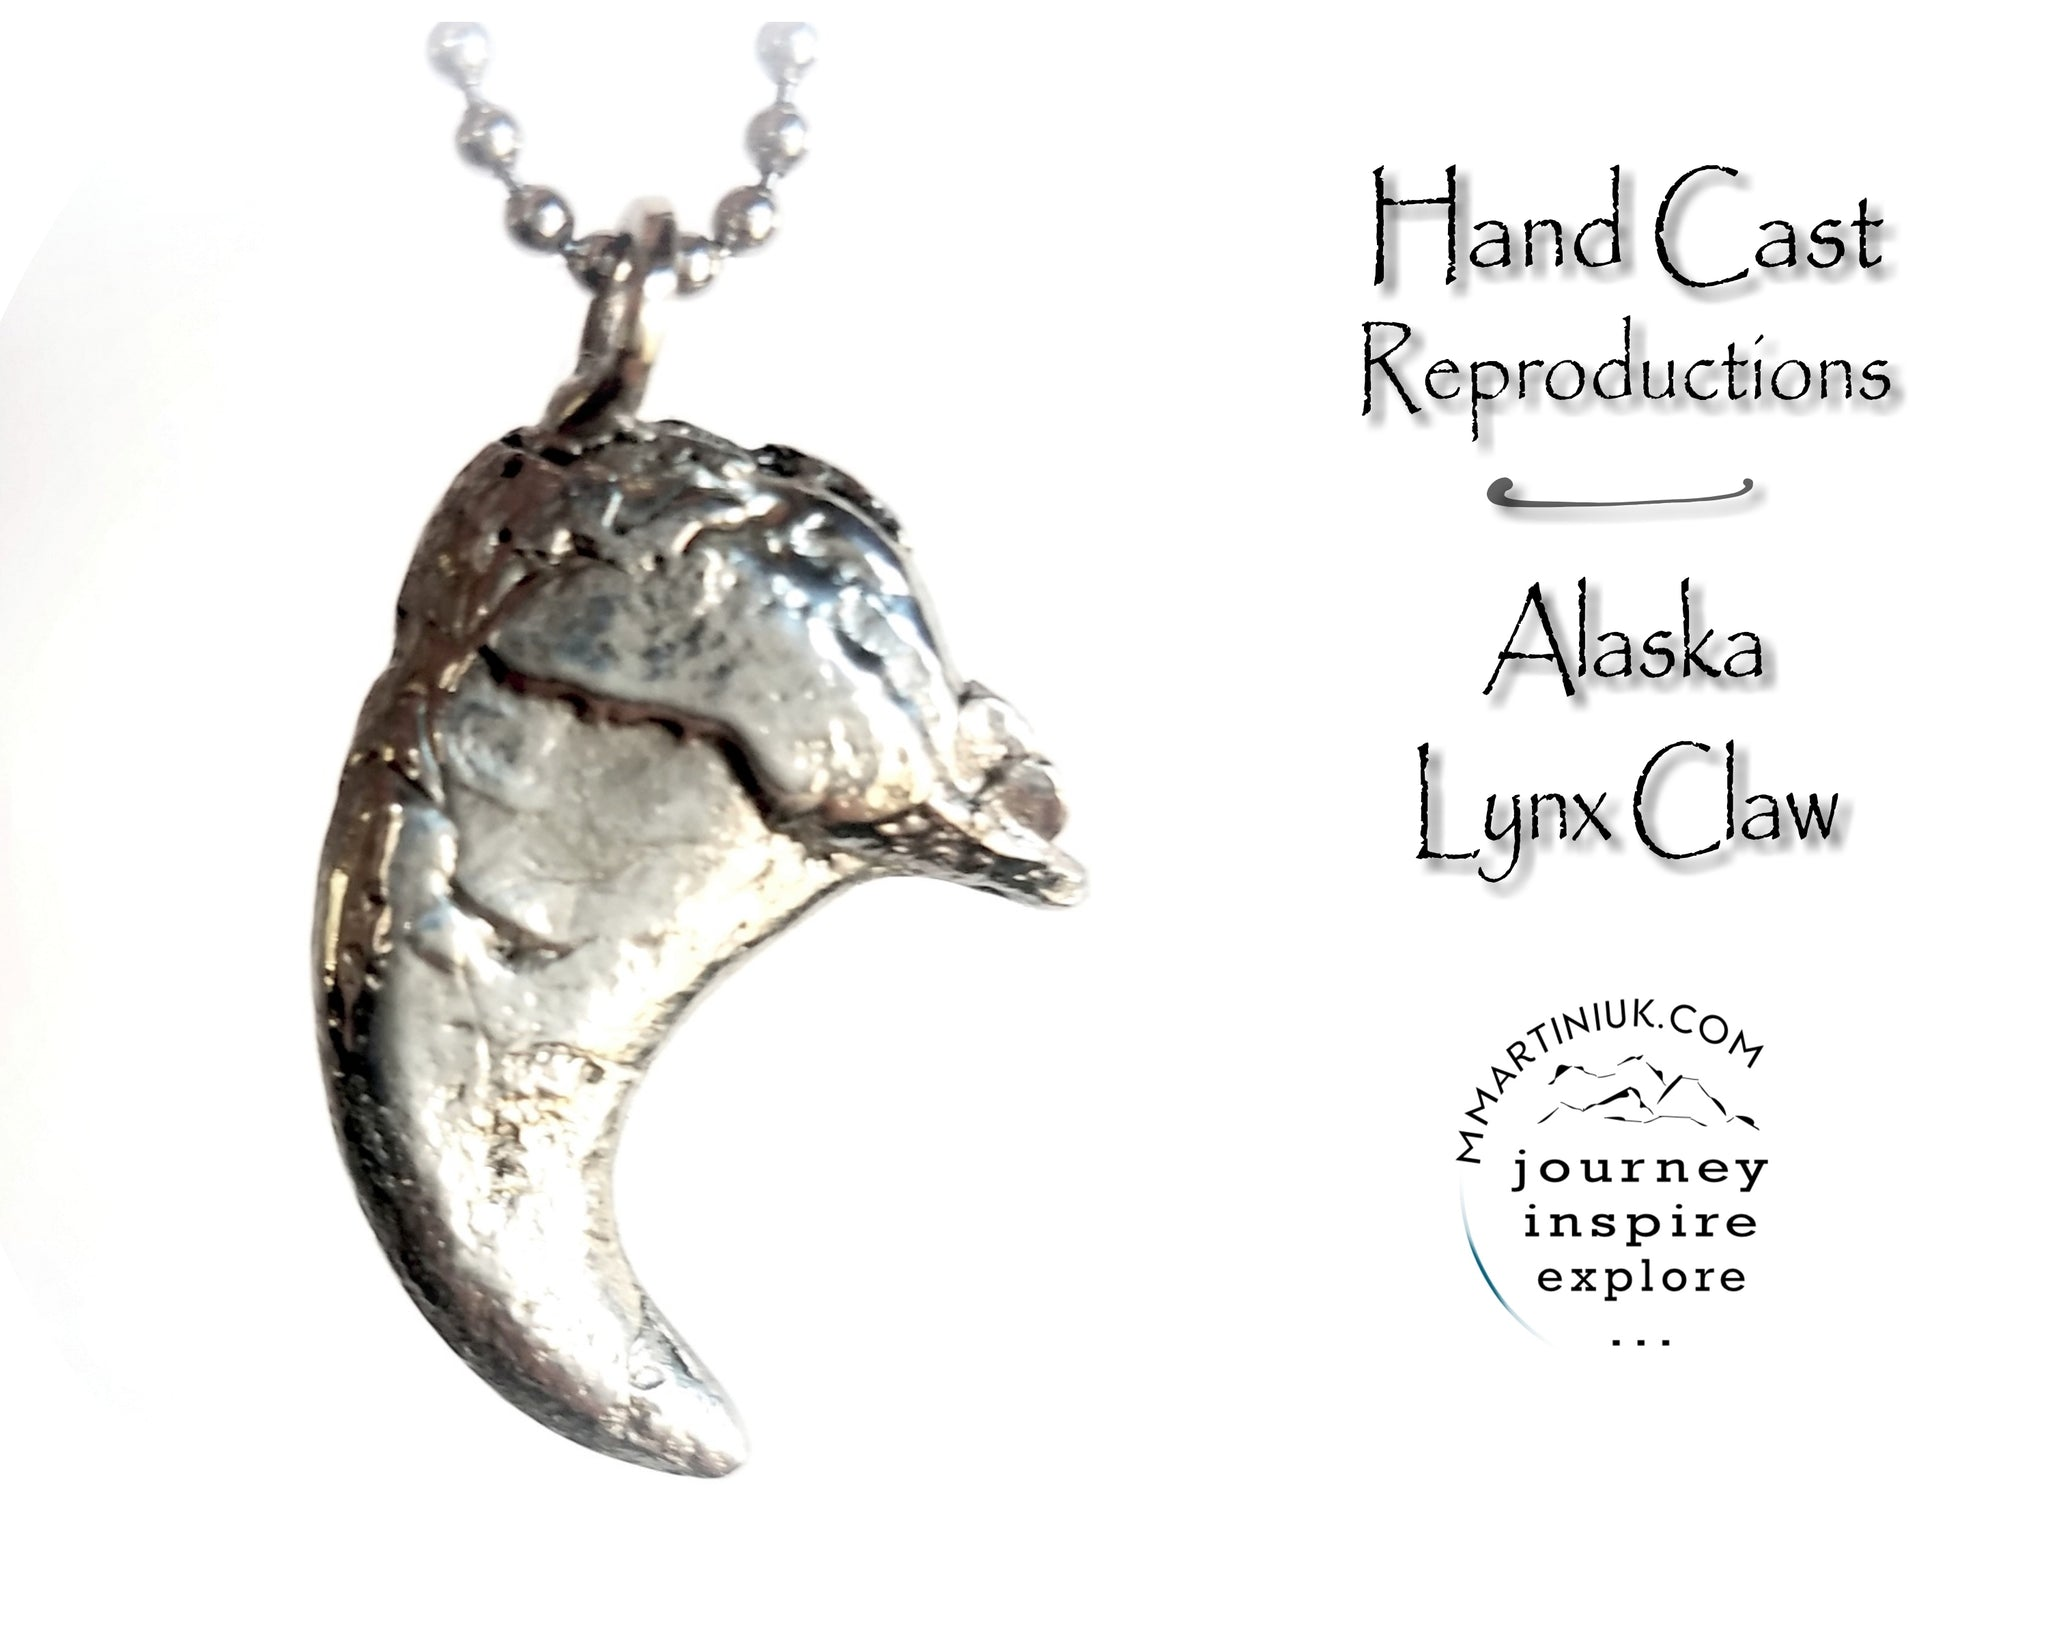 Rustic Alaska Lynx Claw Necklace Hand Cast Small Claw Jewelry